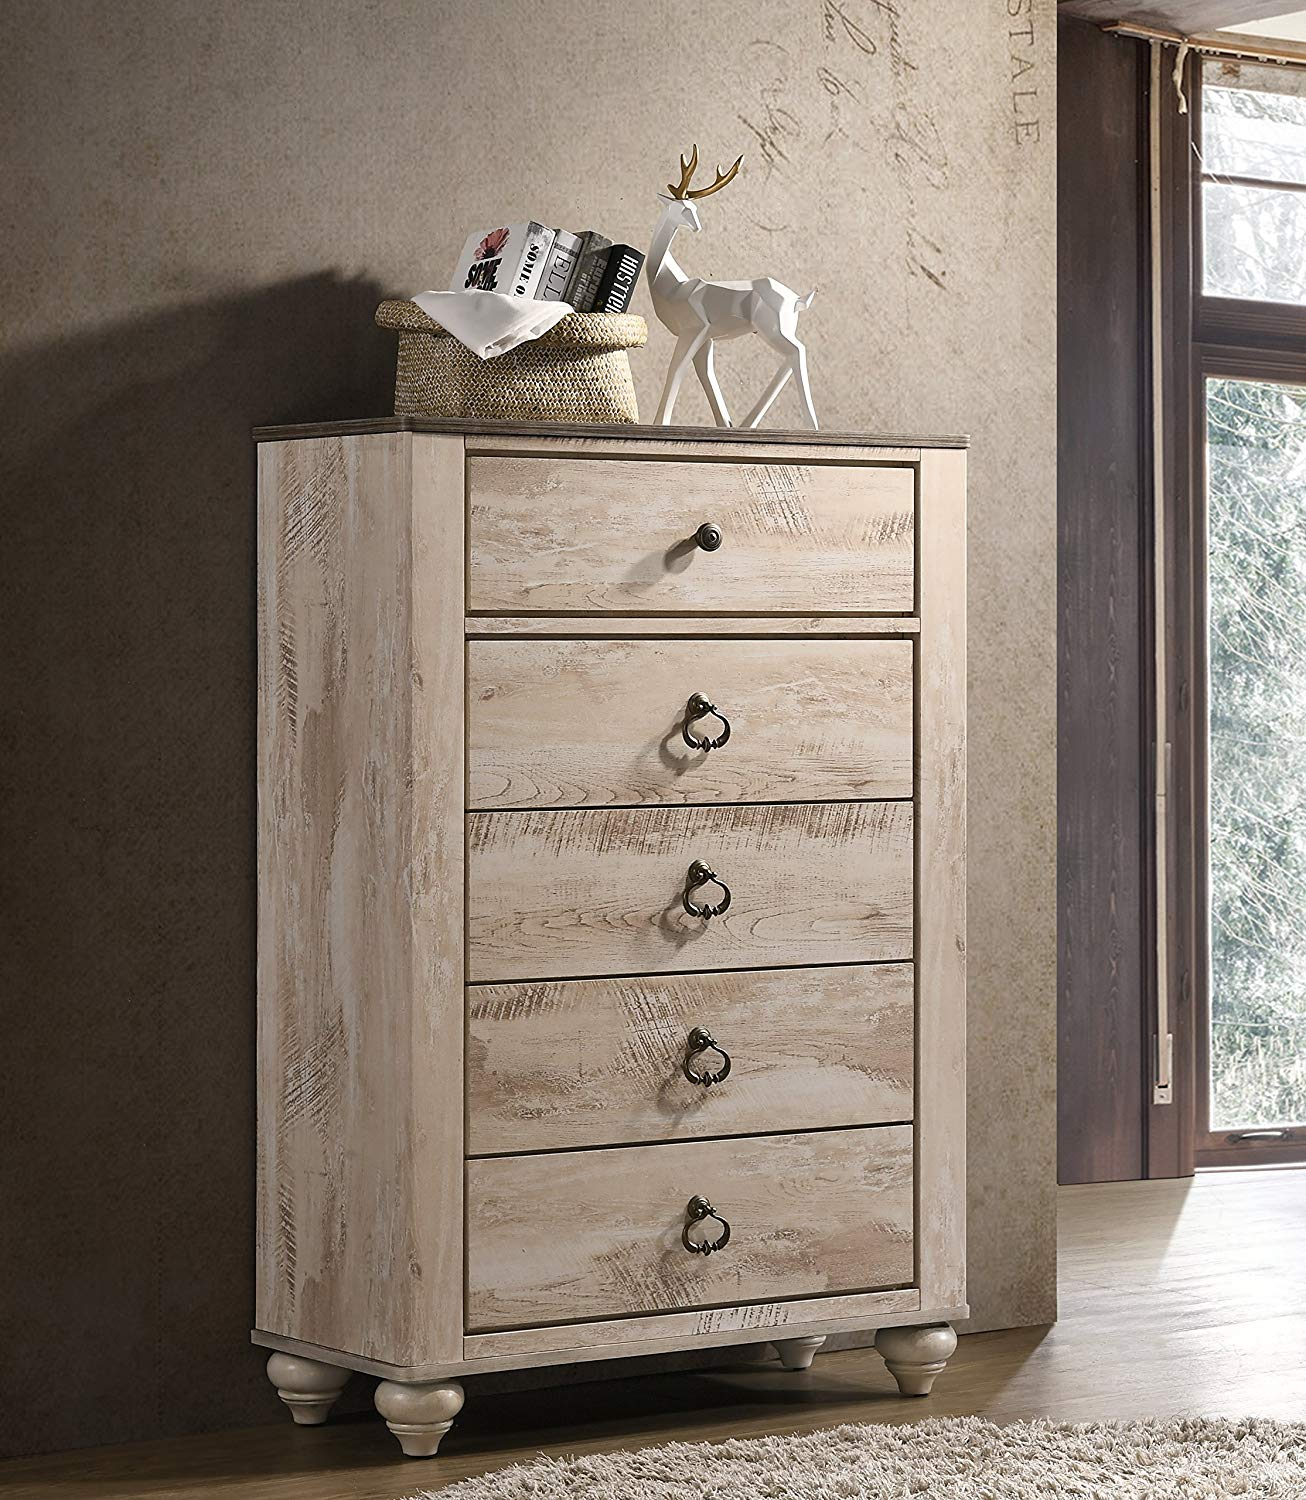 Roundhill Furniture B132C Imerland Contemporary Patched Wood Top 5-Drawer Chest, Brown